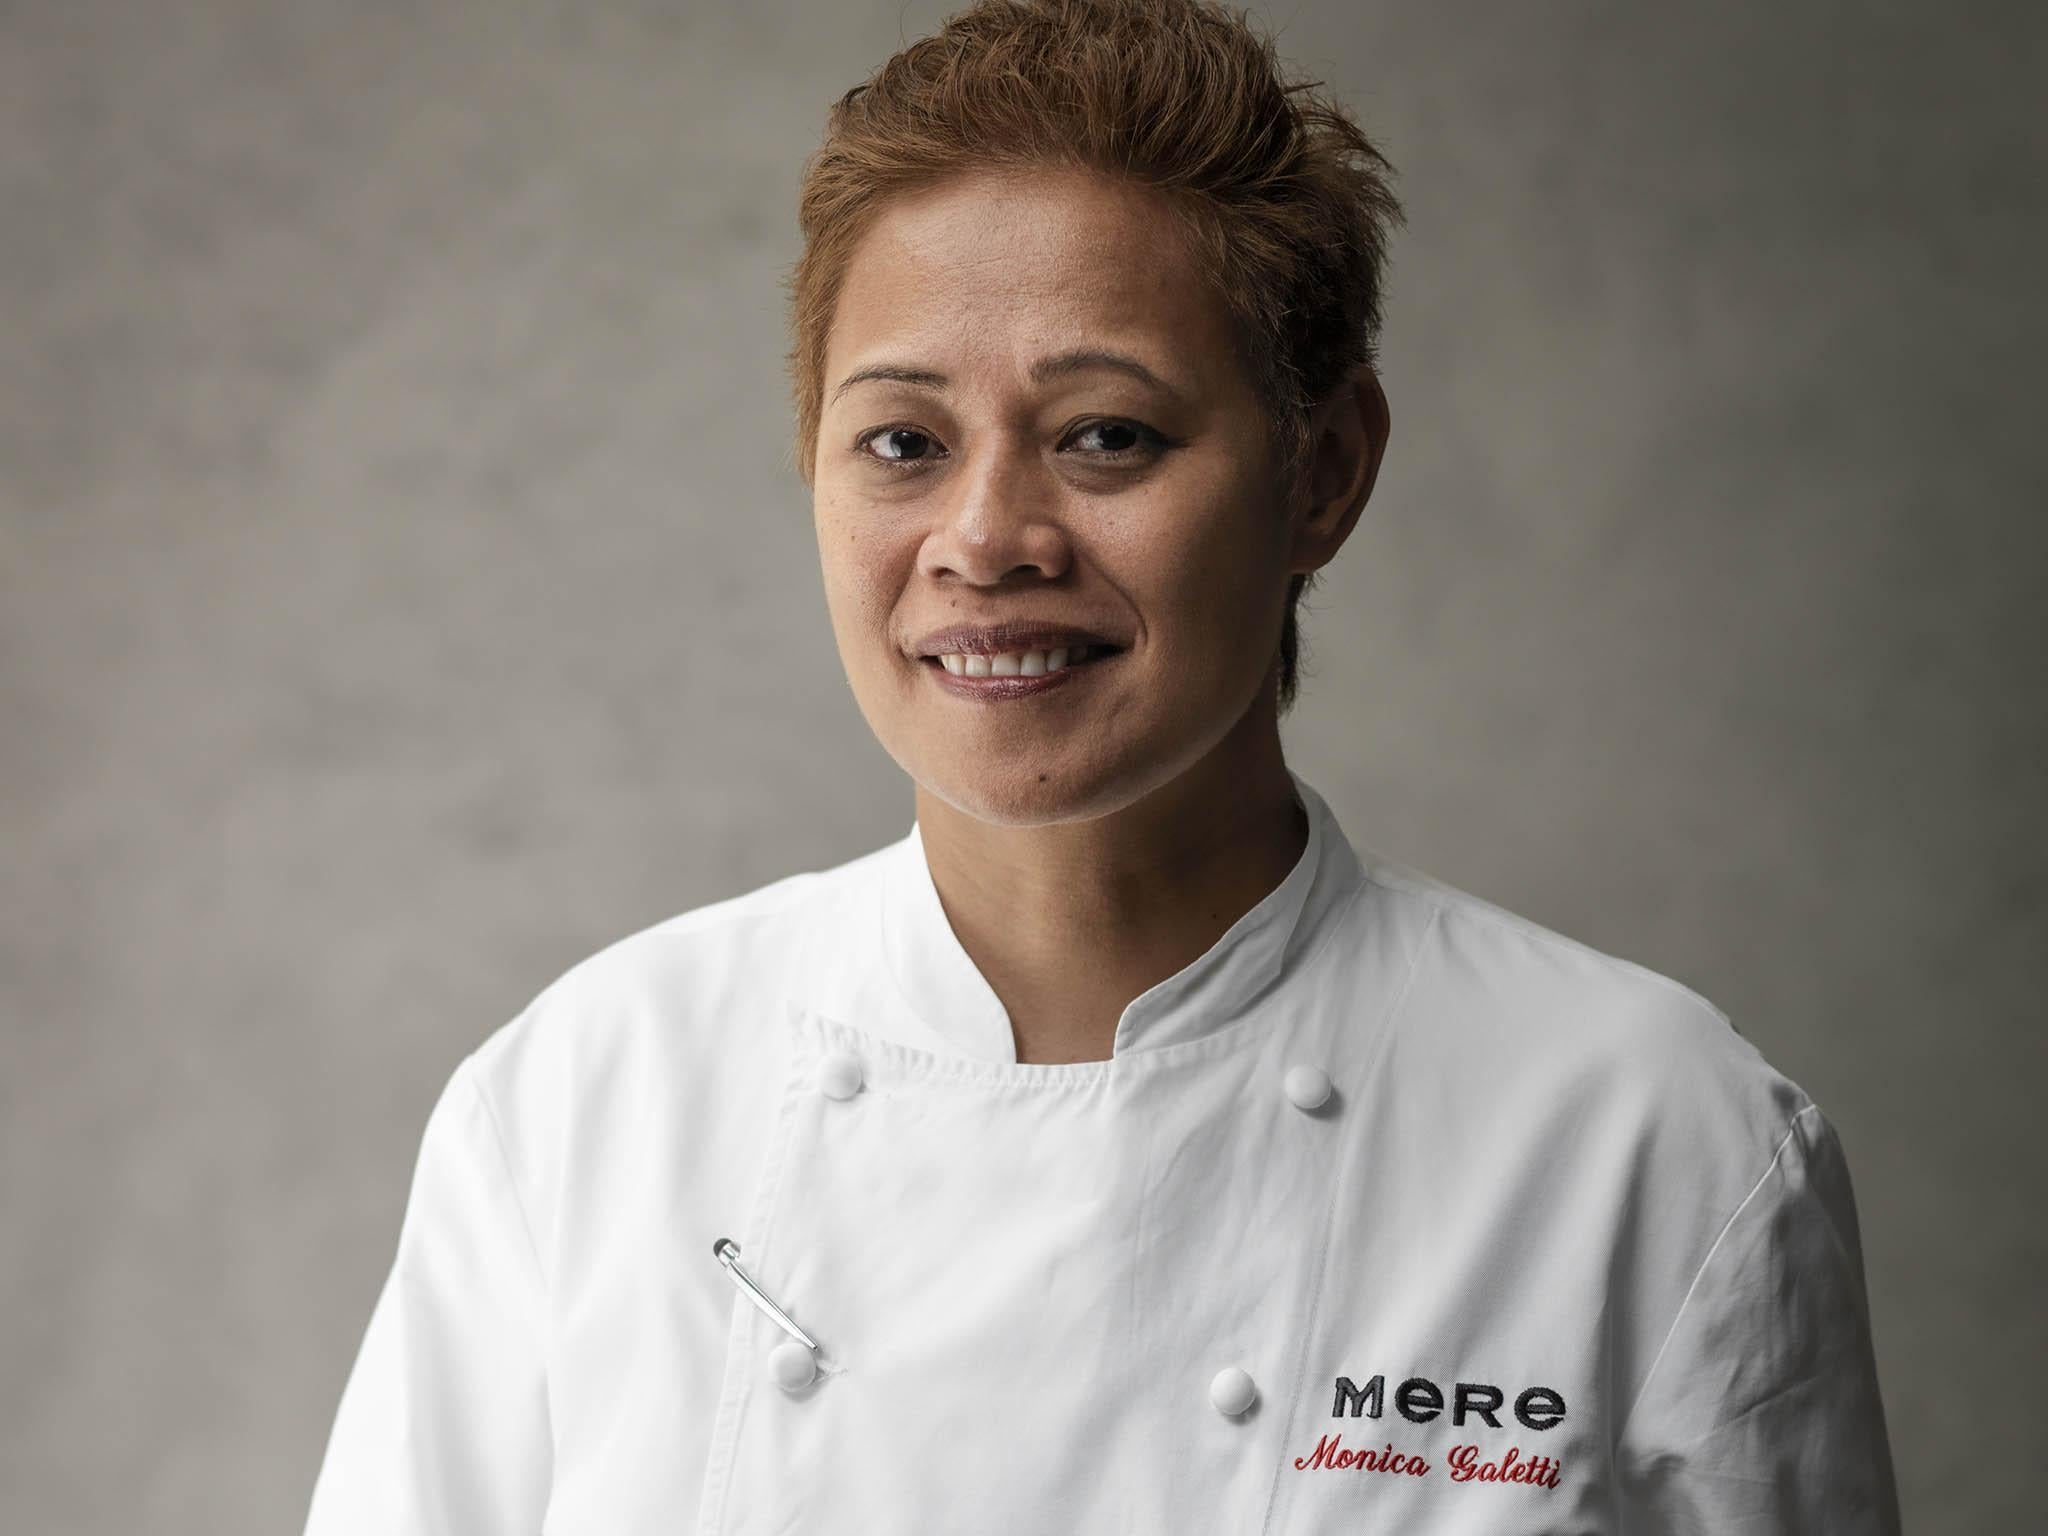 Chef Monica Galetti on working with her husband, getting to the top and judging MasterChef 1